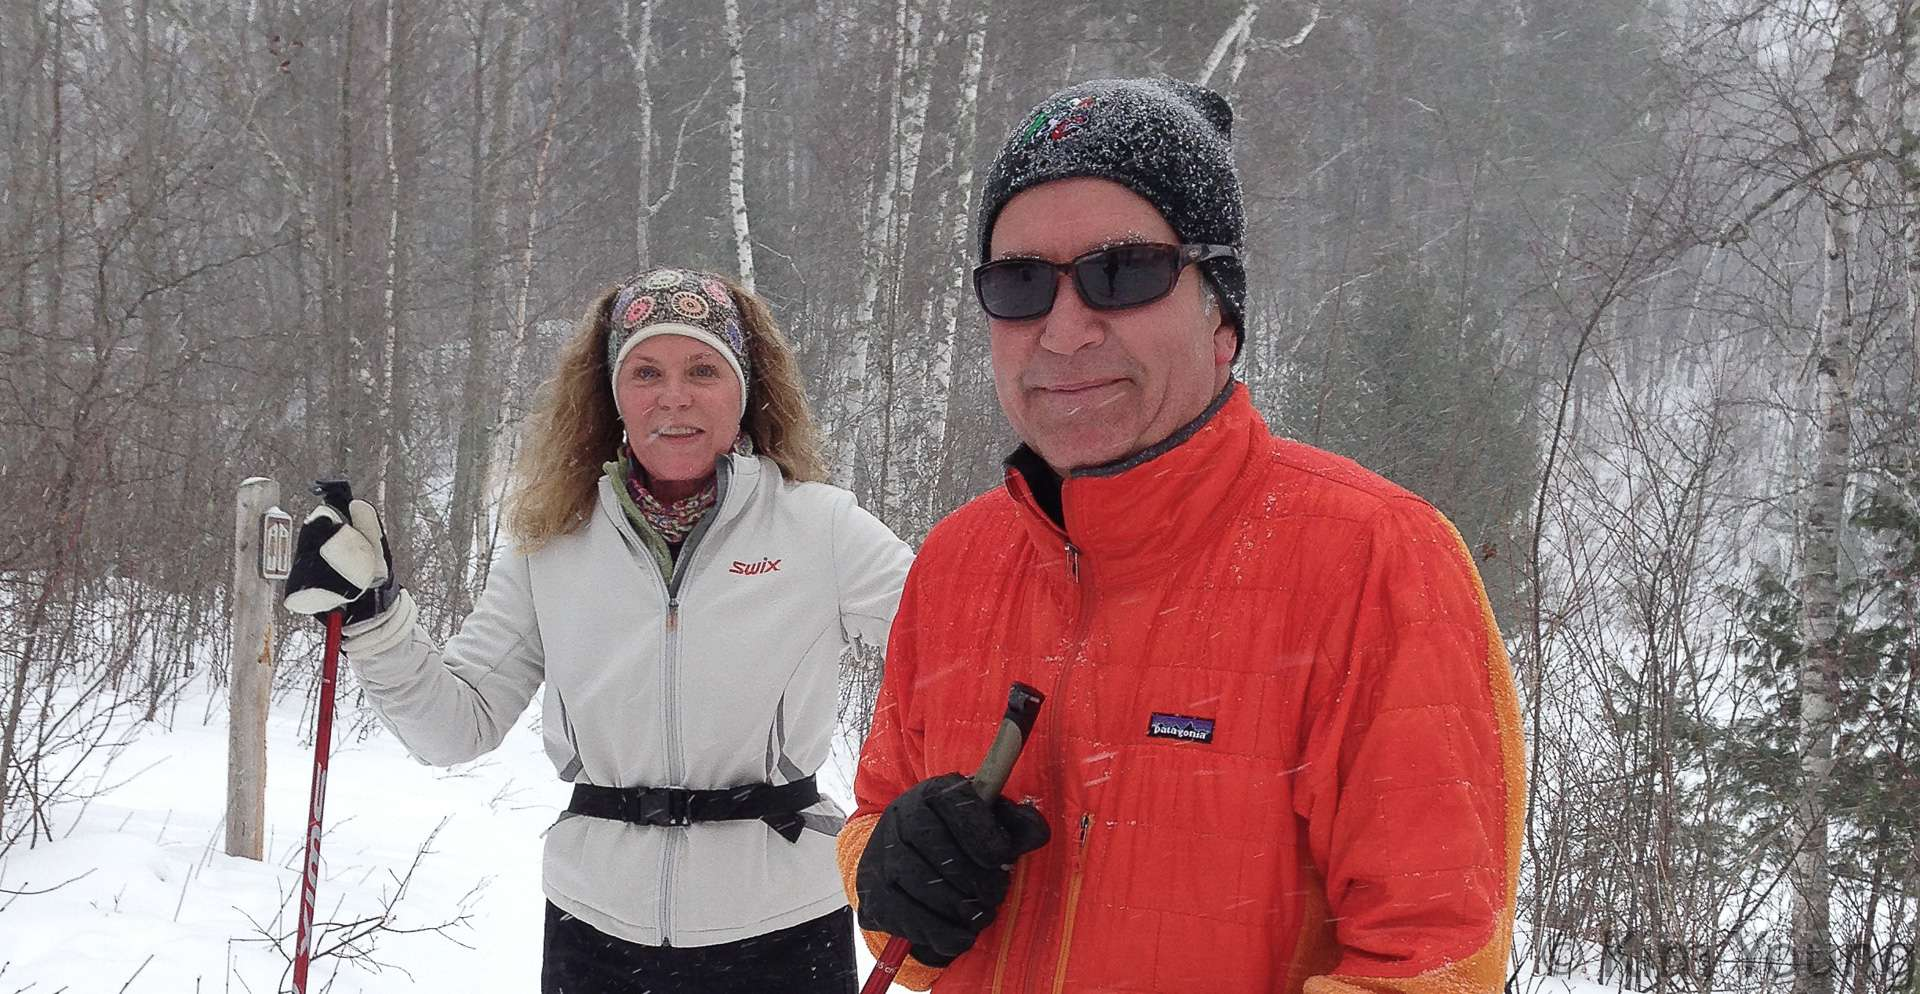 A man and woman on skis pose for a photo